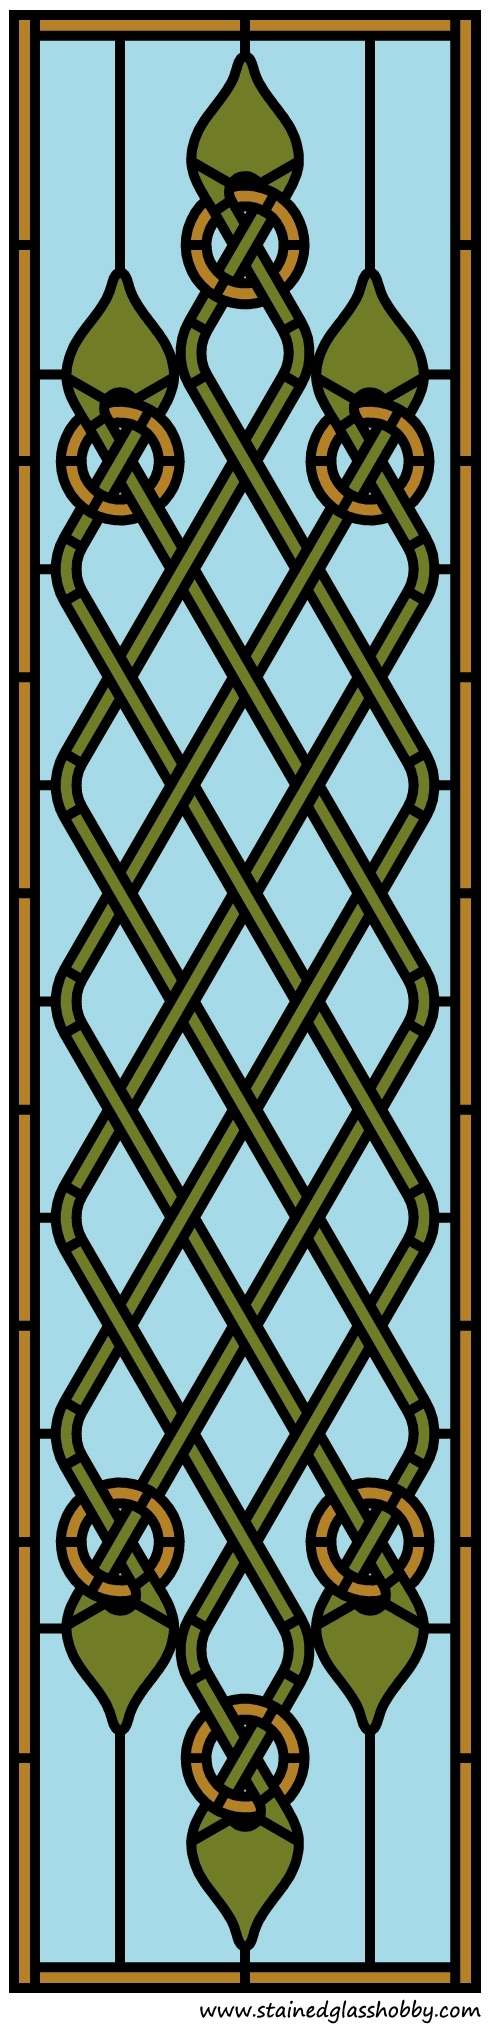 Celtic pattern stained glass panel design